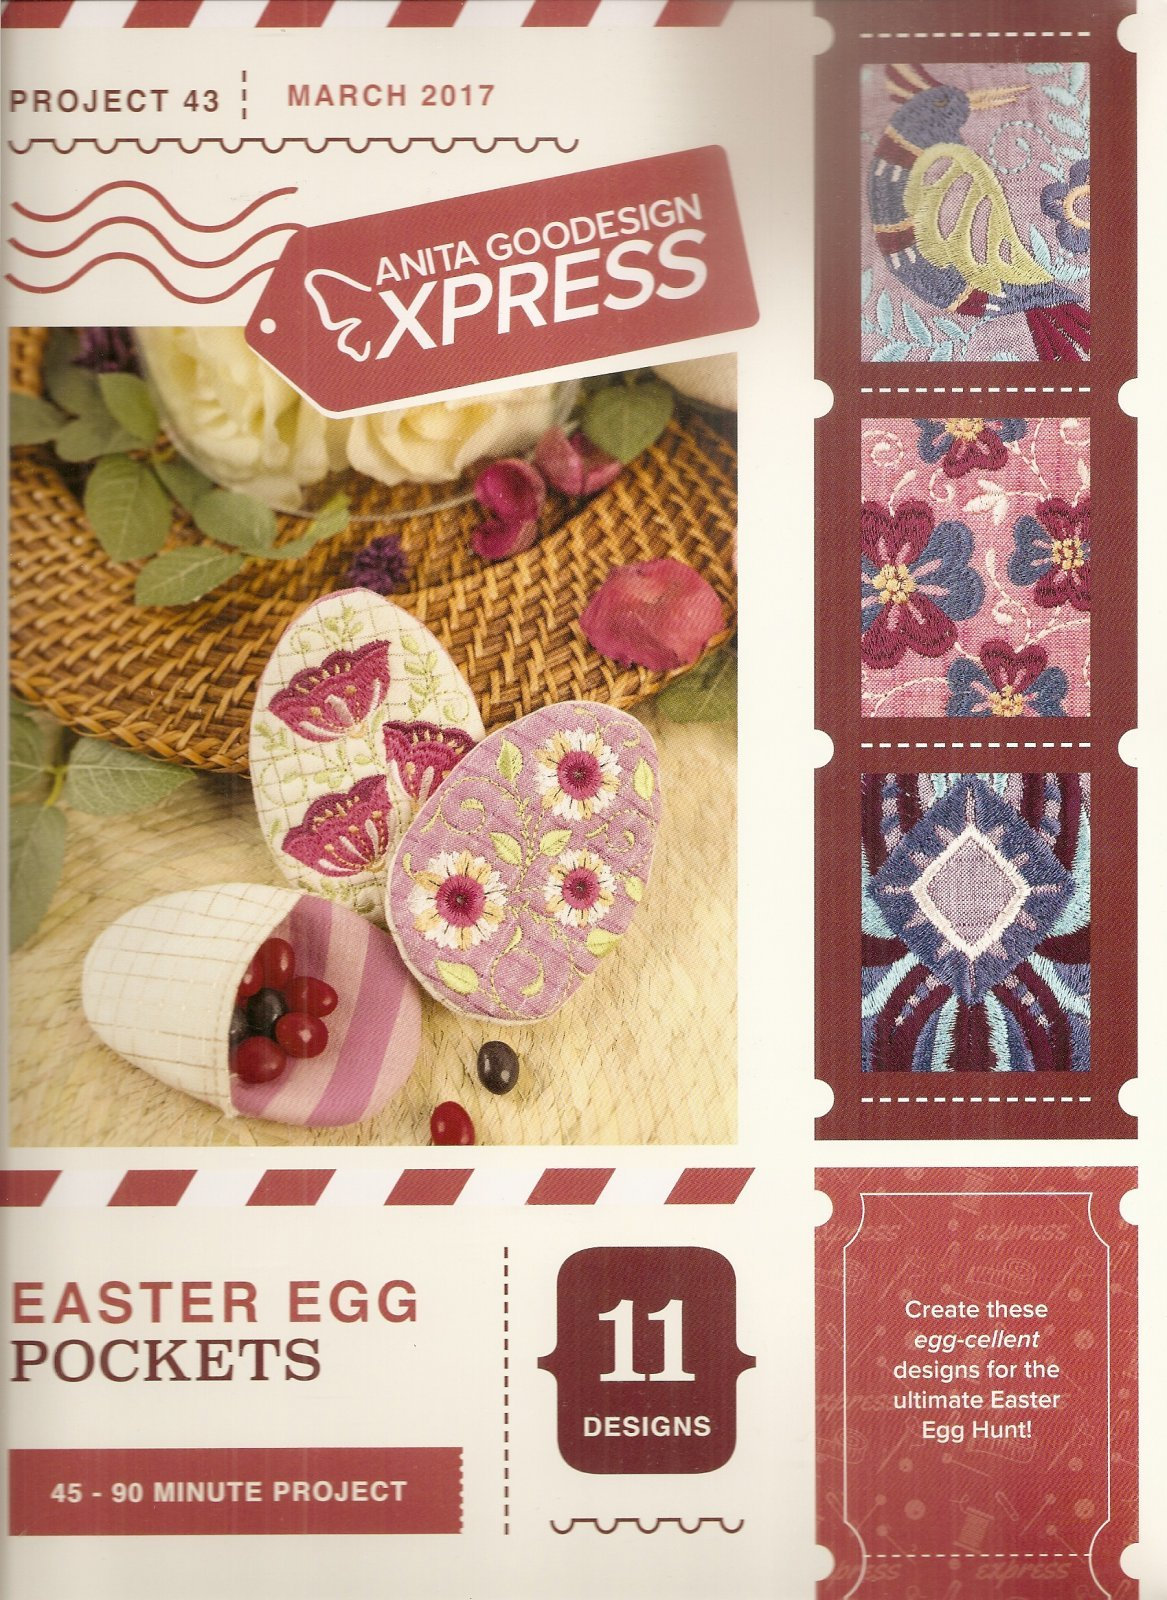 Anita Goodesign - Express #43 - Easter Egg Pockets